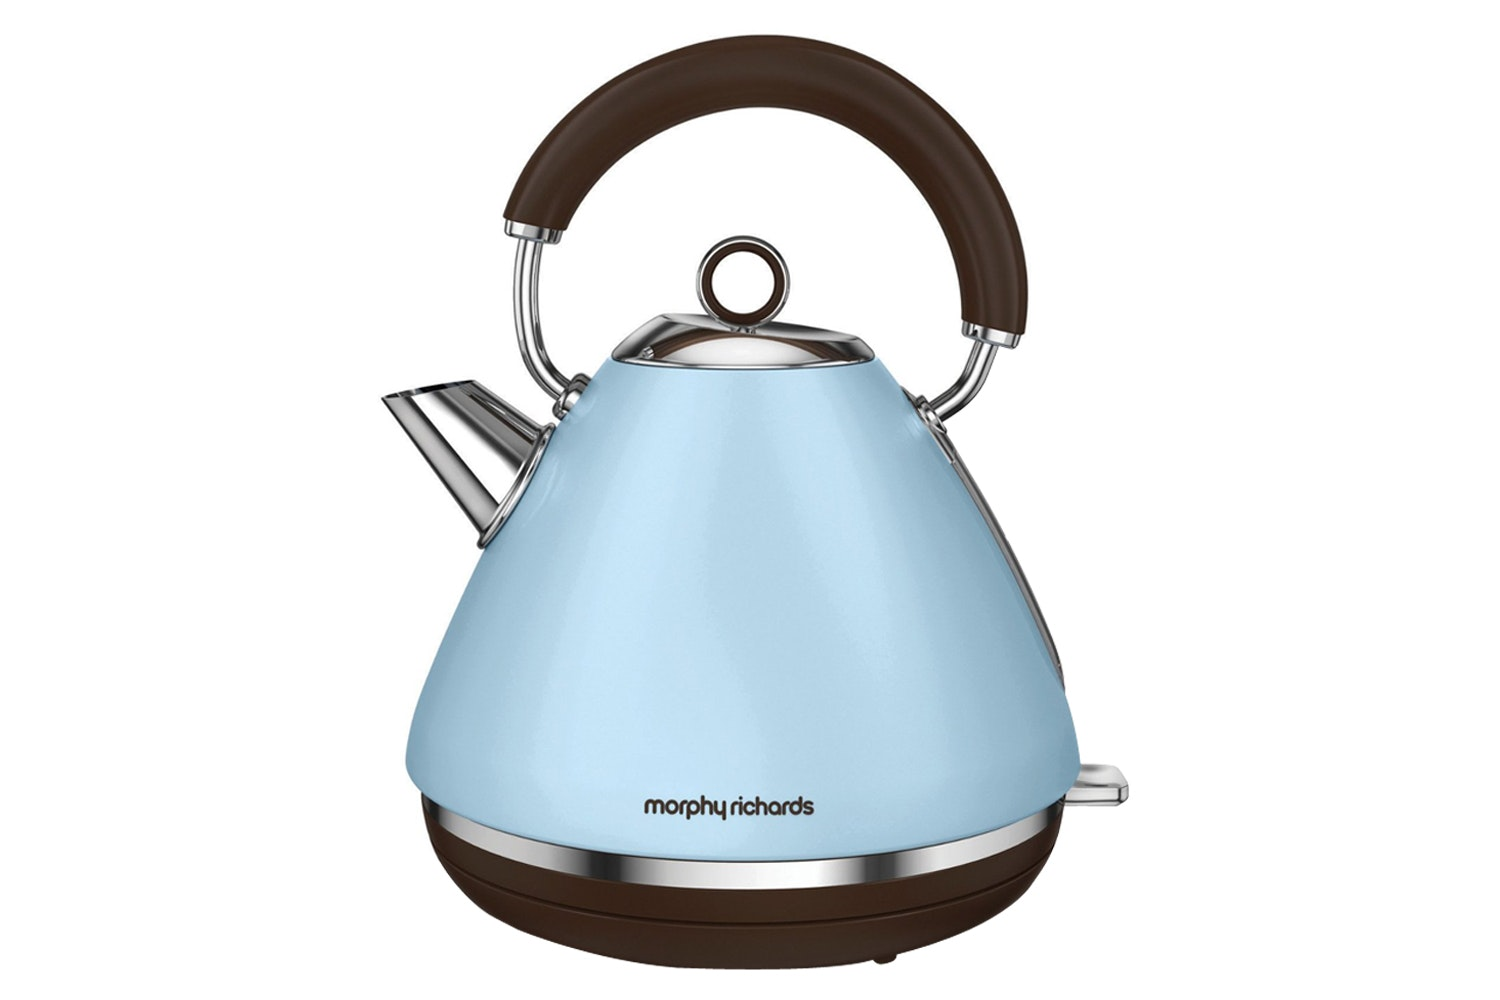 Morphy Richards Accents Kettle | Azure